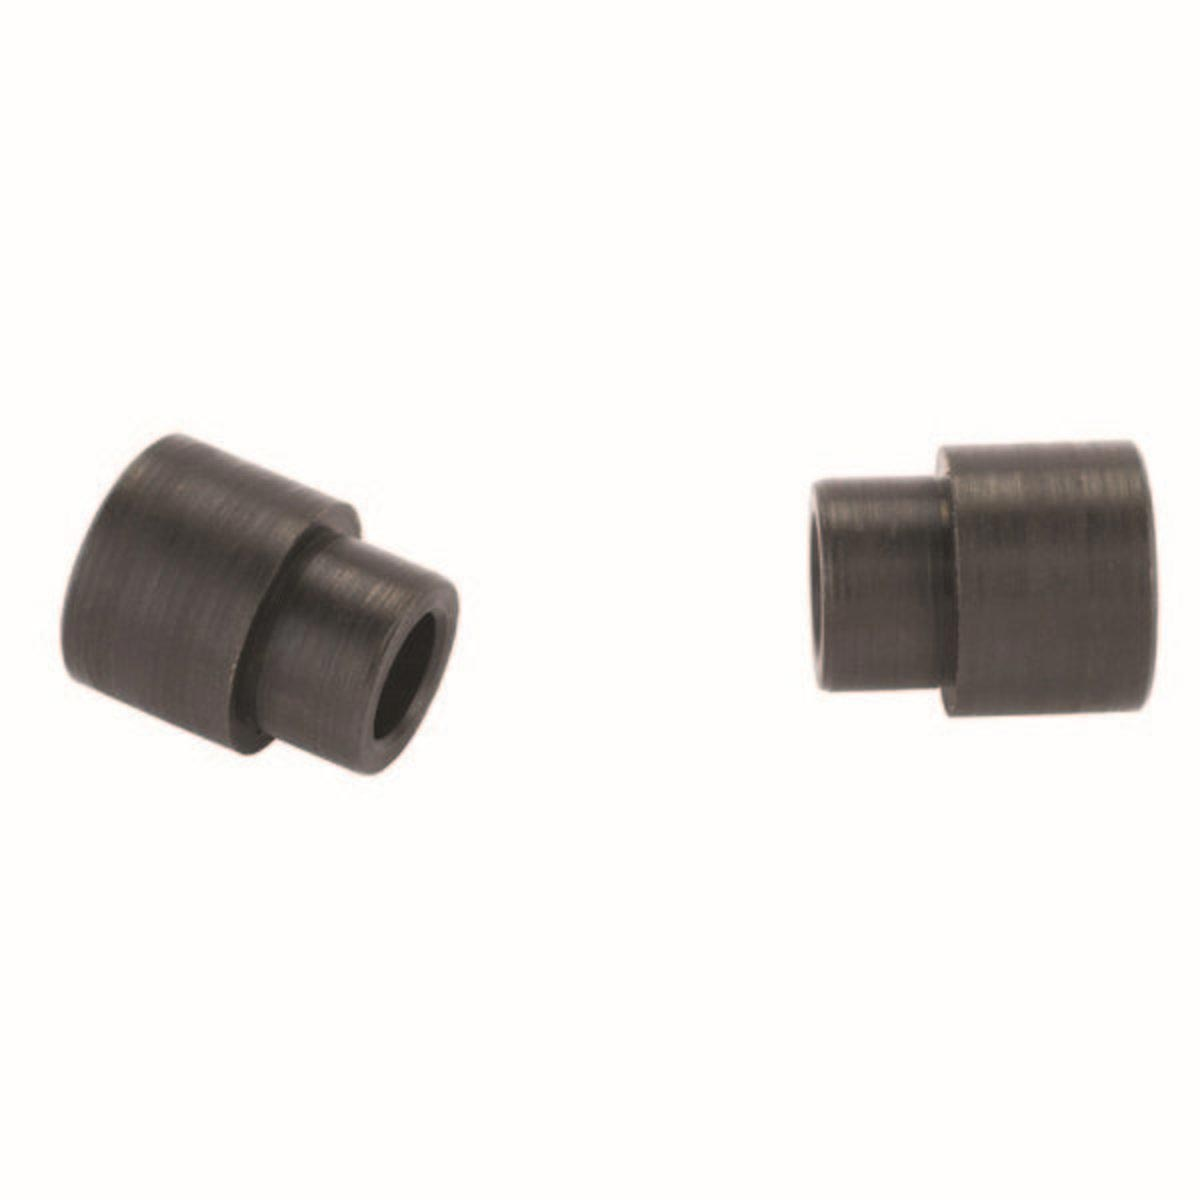 Bushings for Attraction Magnetic Ballpoint & Rollerball Pen Kits